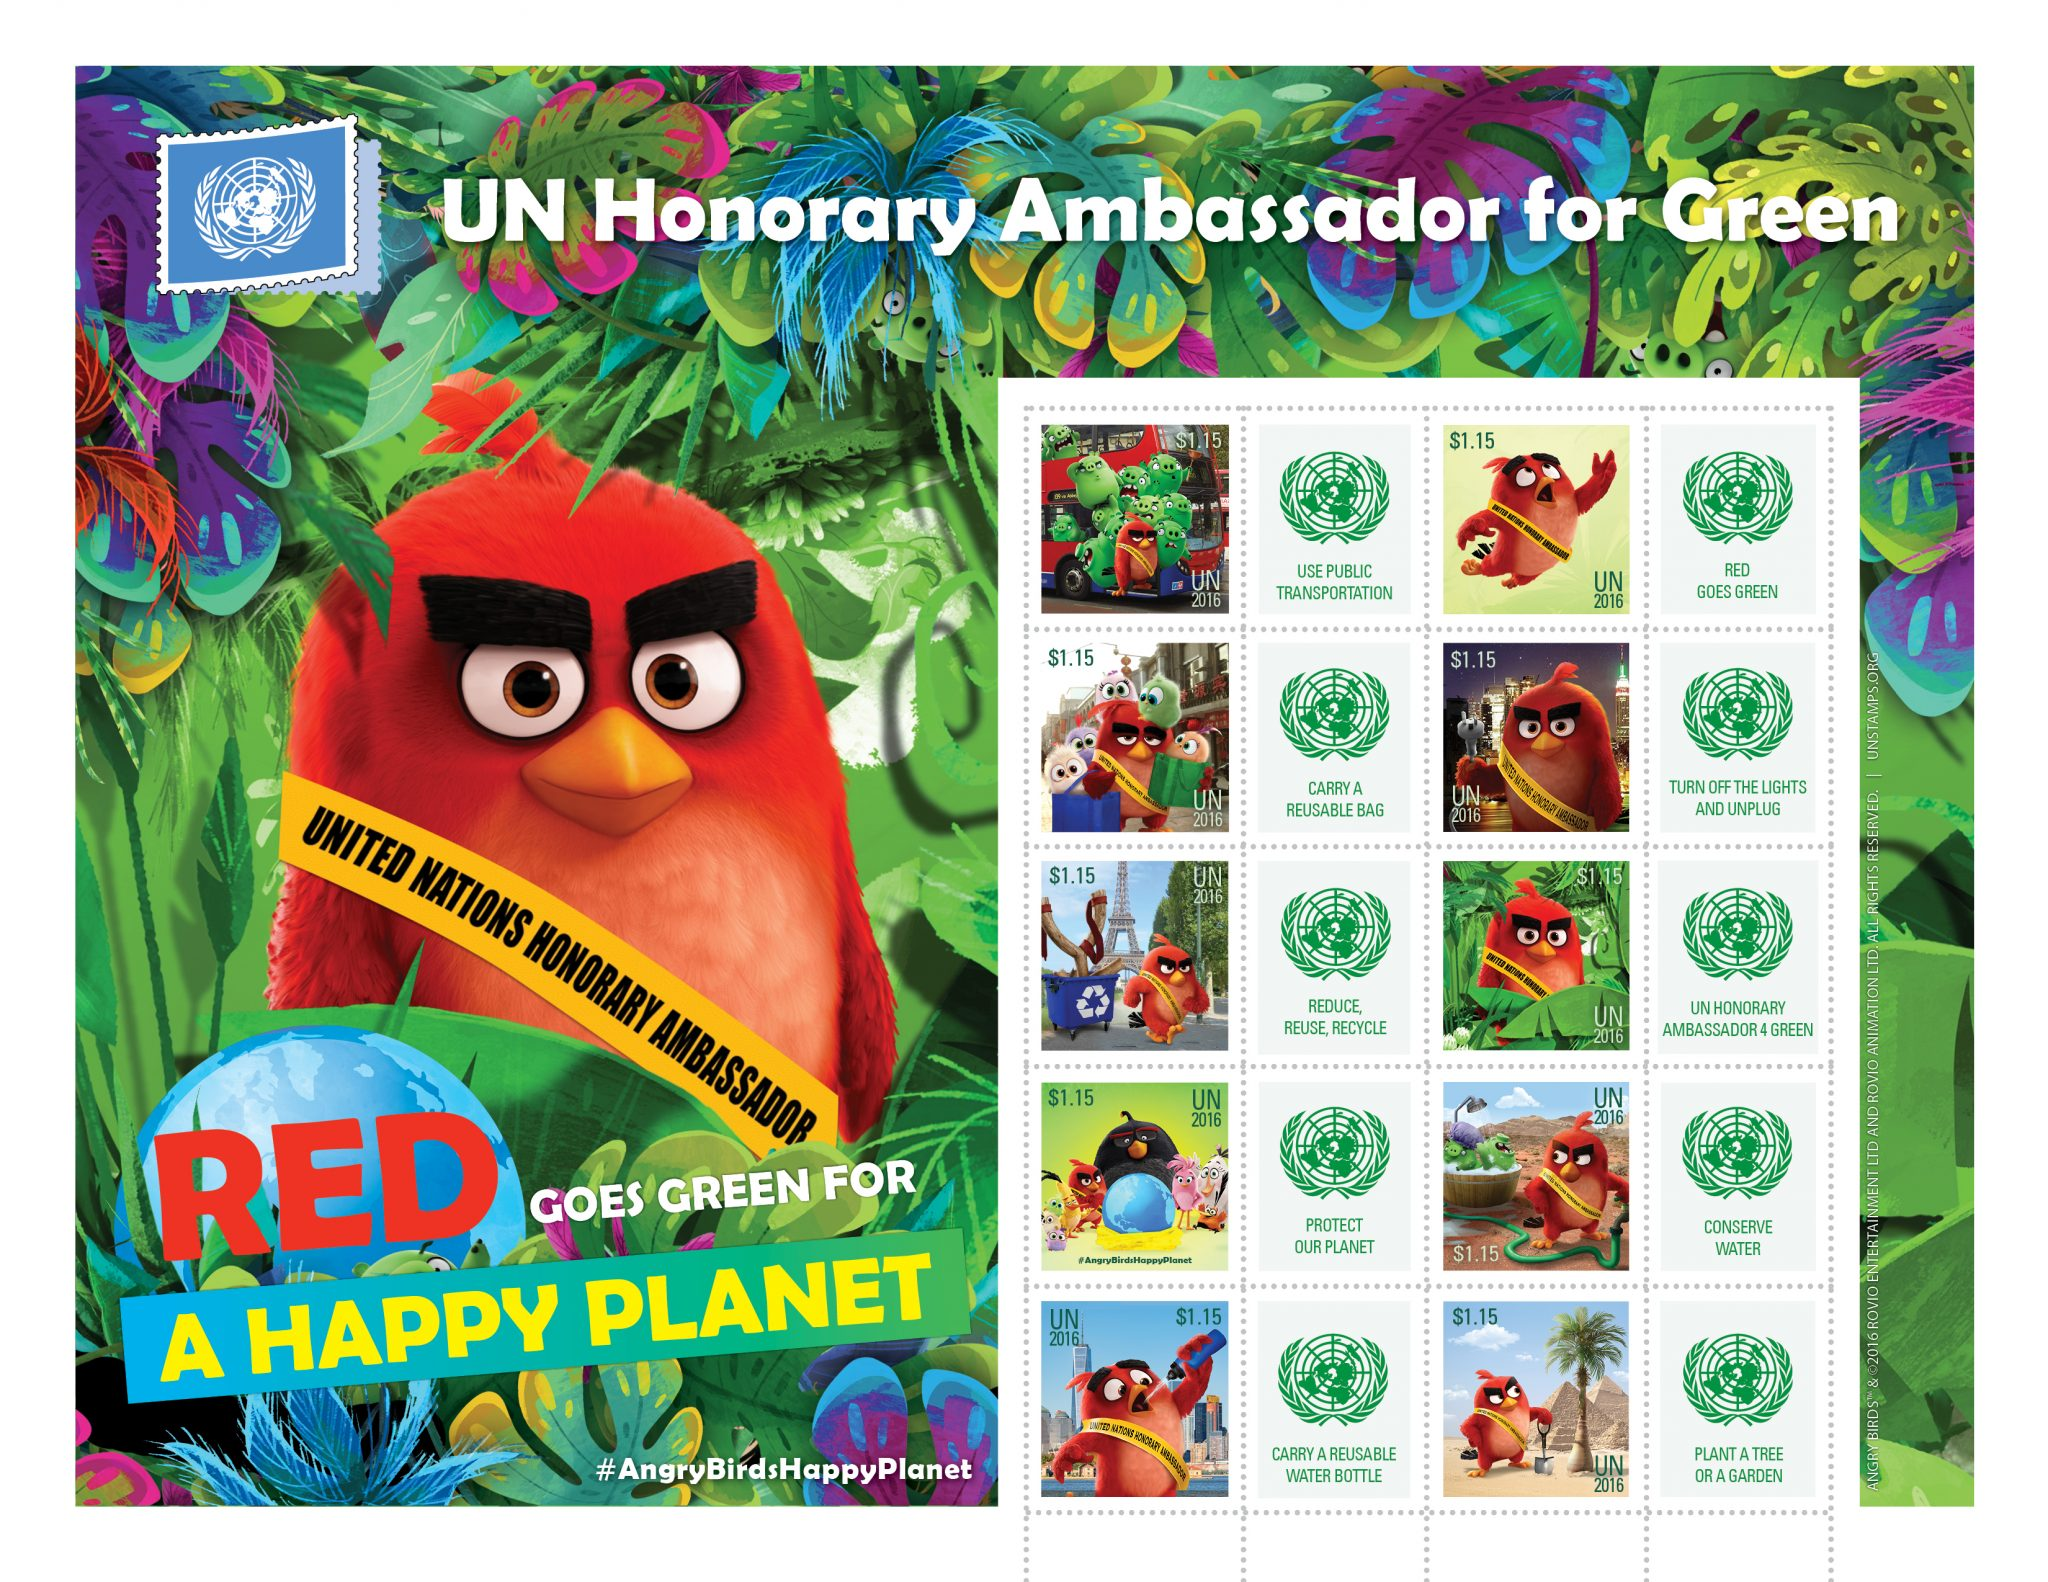 UNPA Launches Special Stamps Featuring Angry Birds